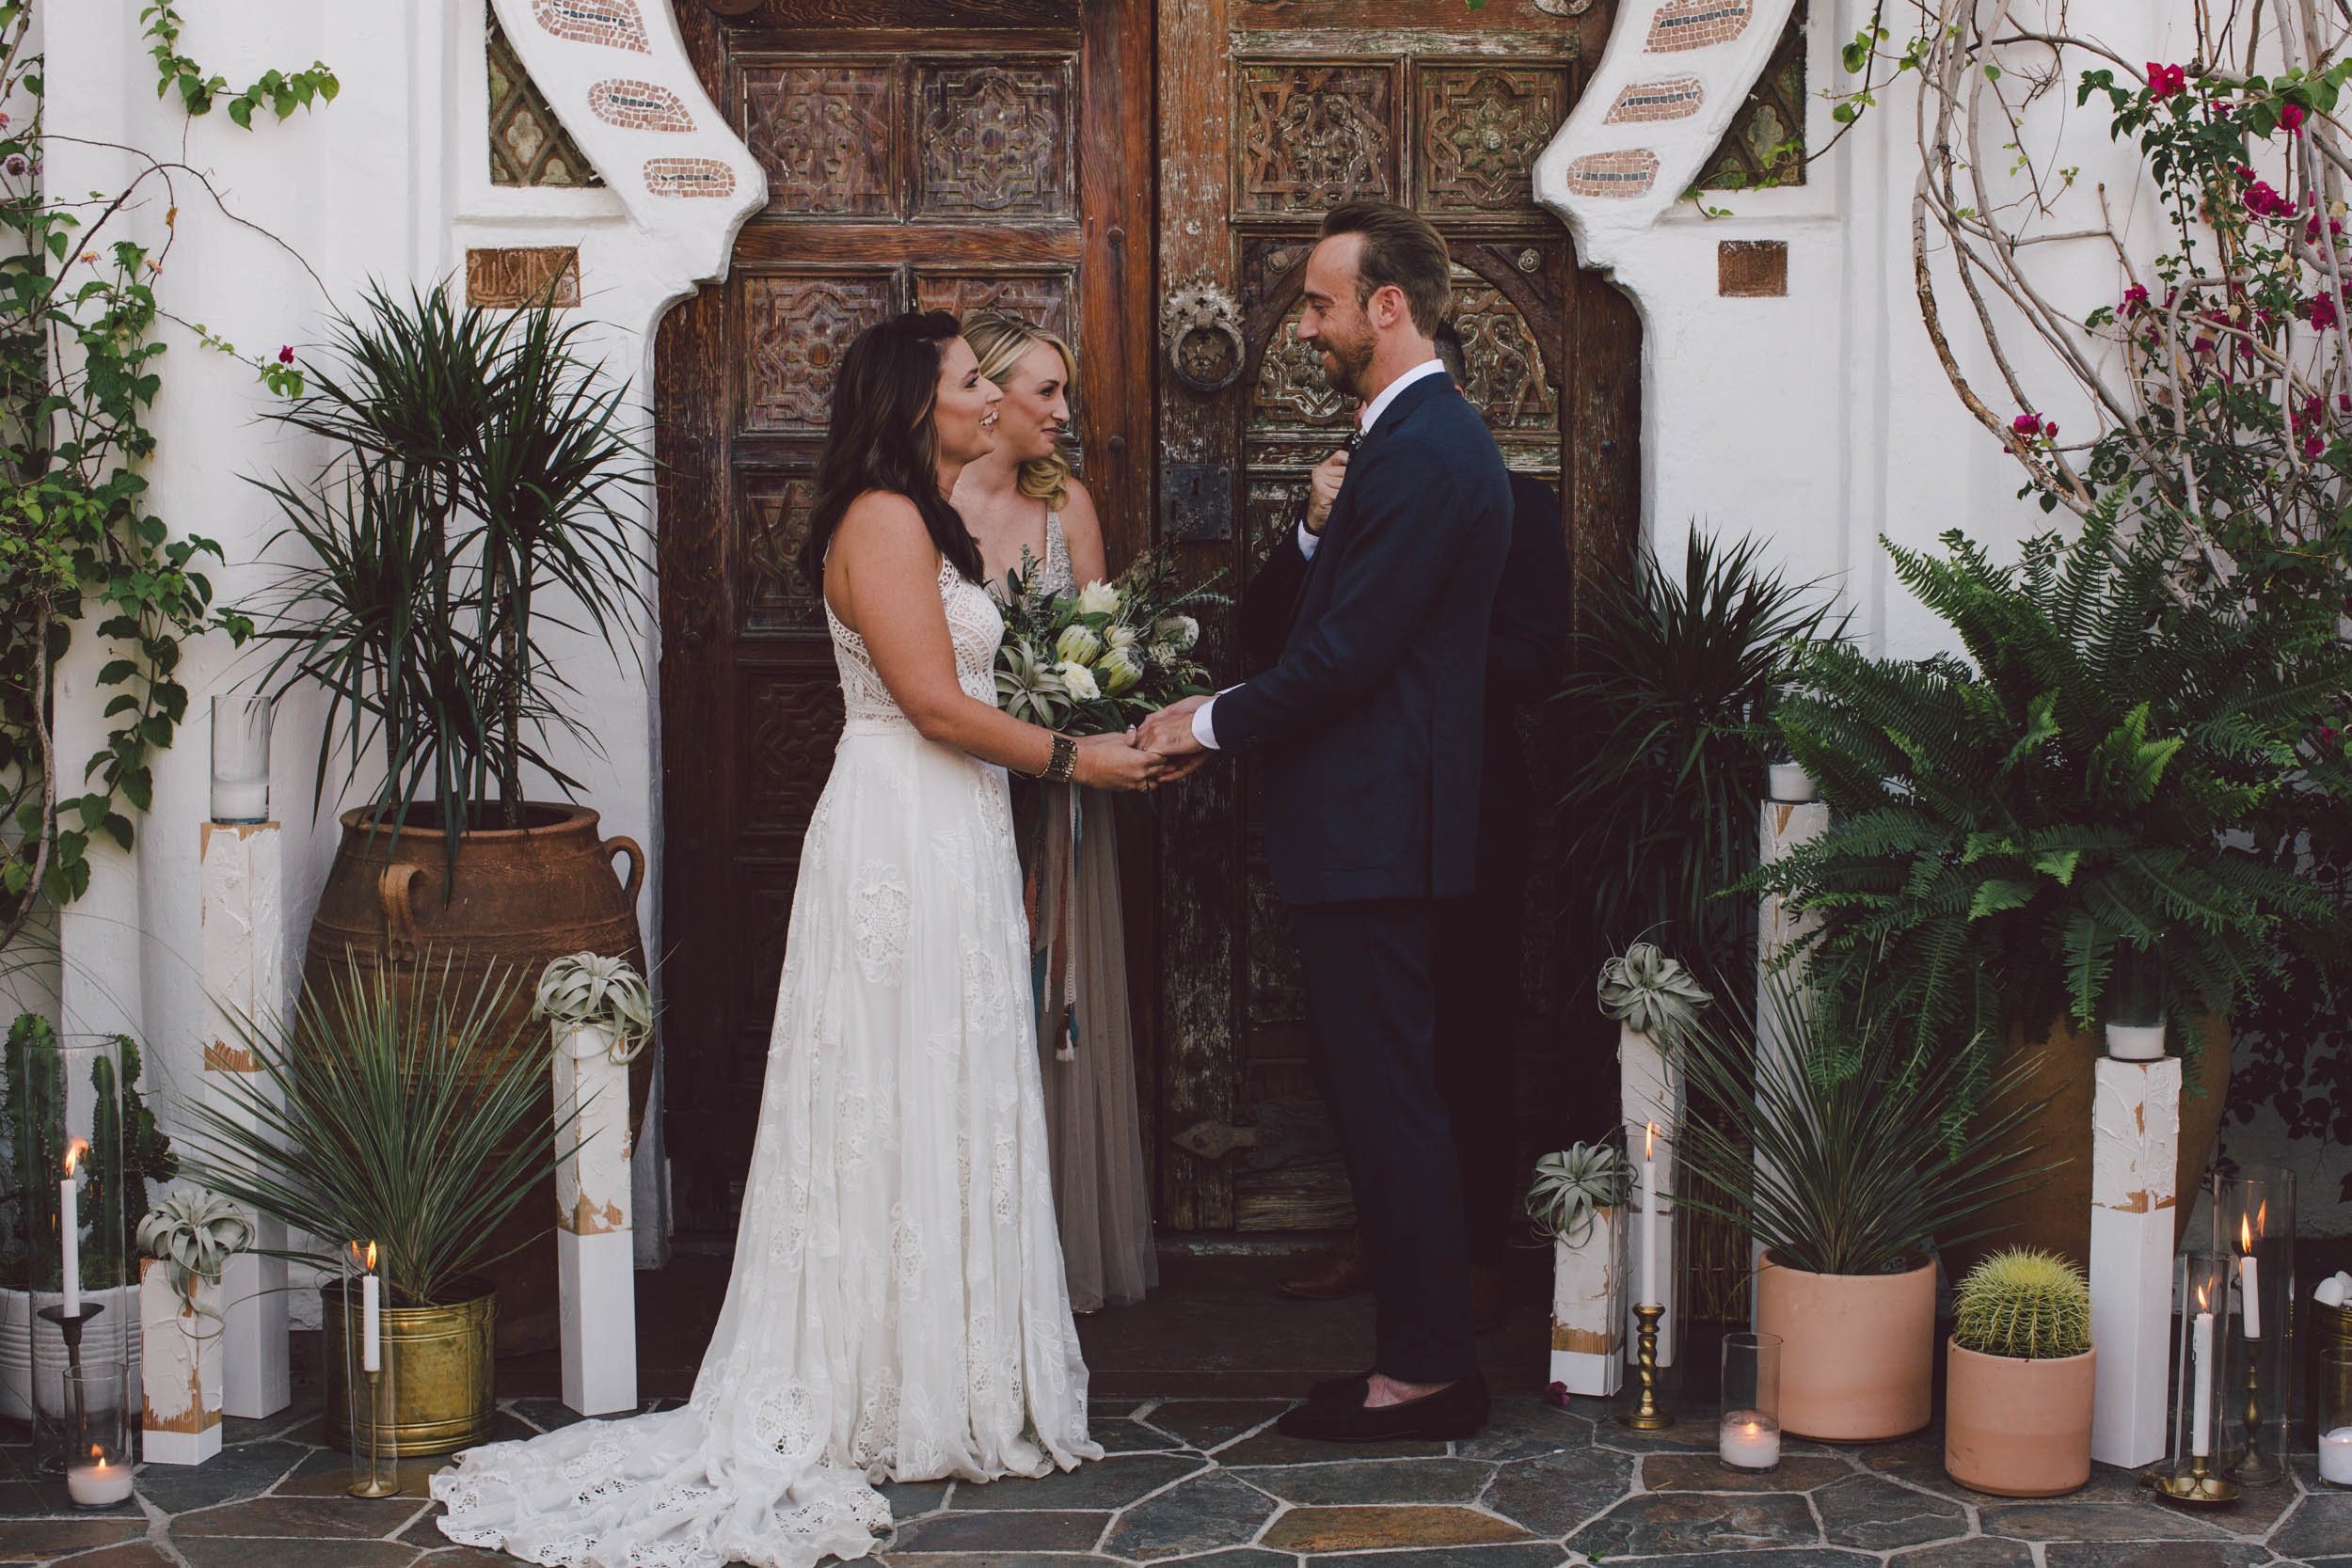 korakia pensione palm springs wedding photography